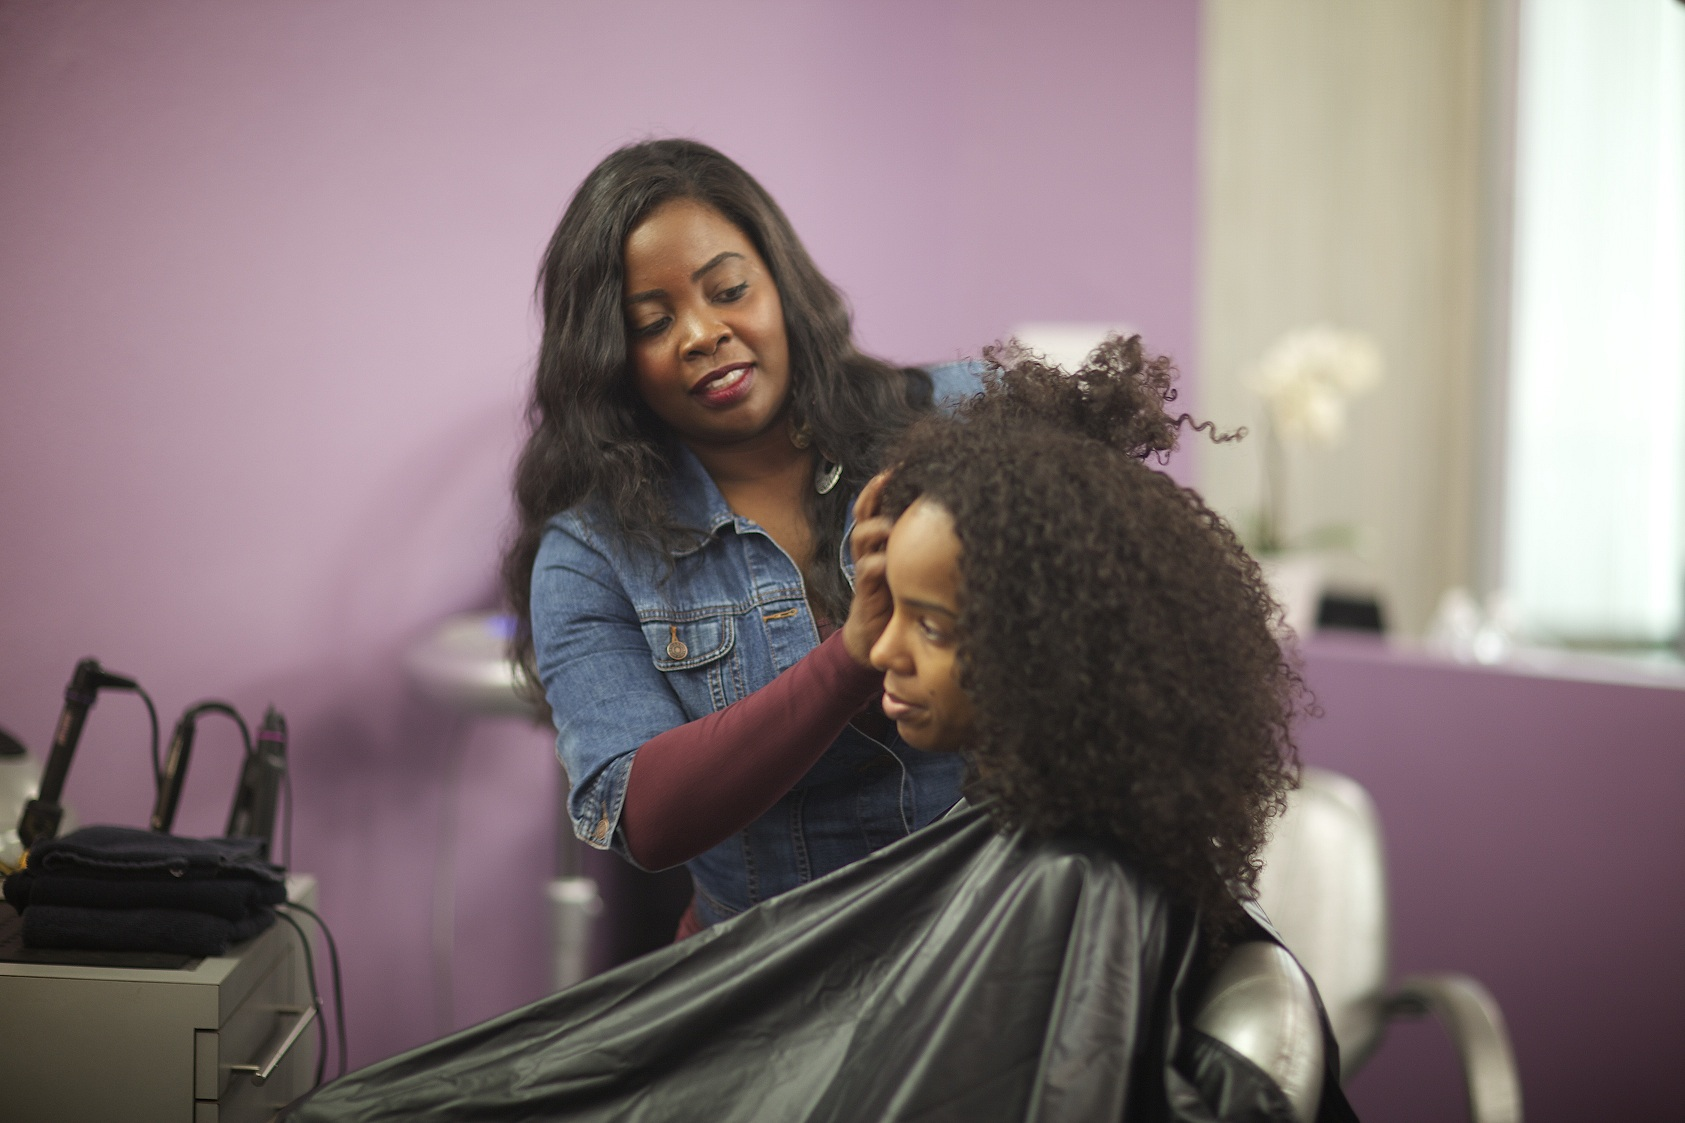 Hairstyling comes to reality tv